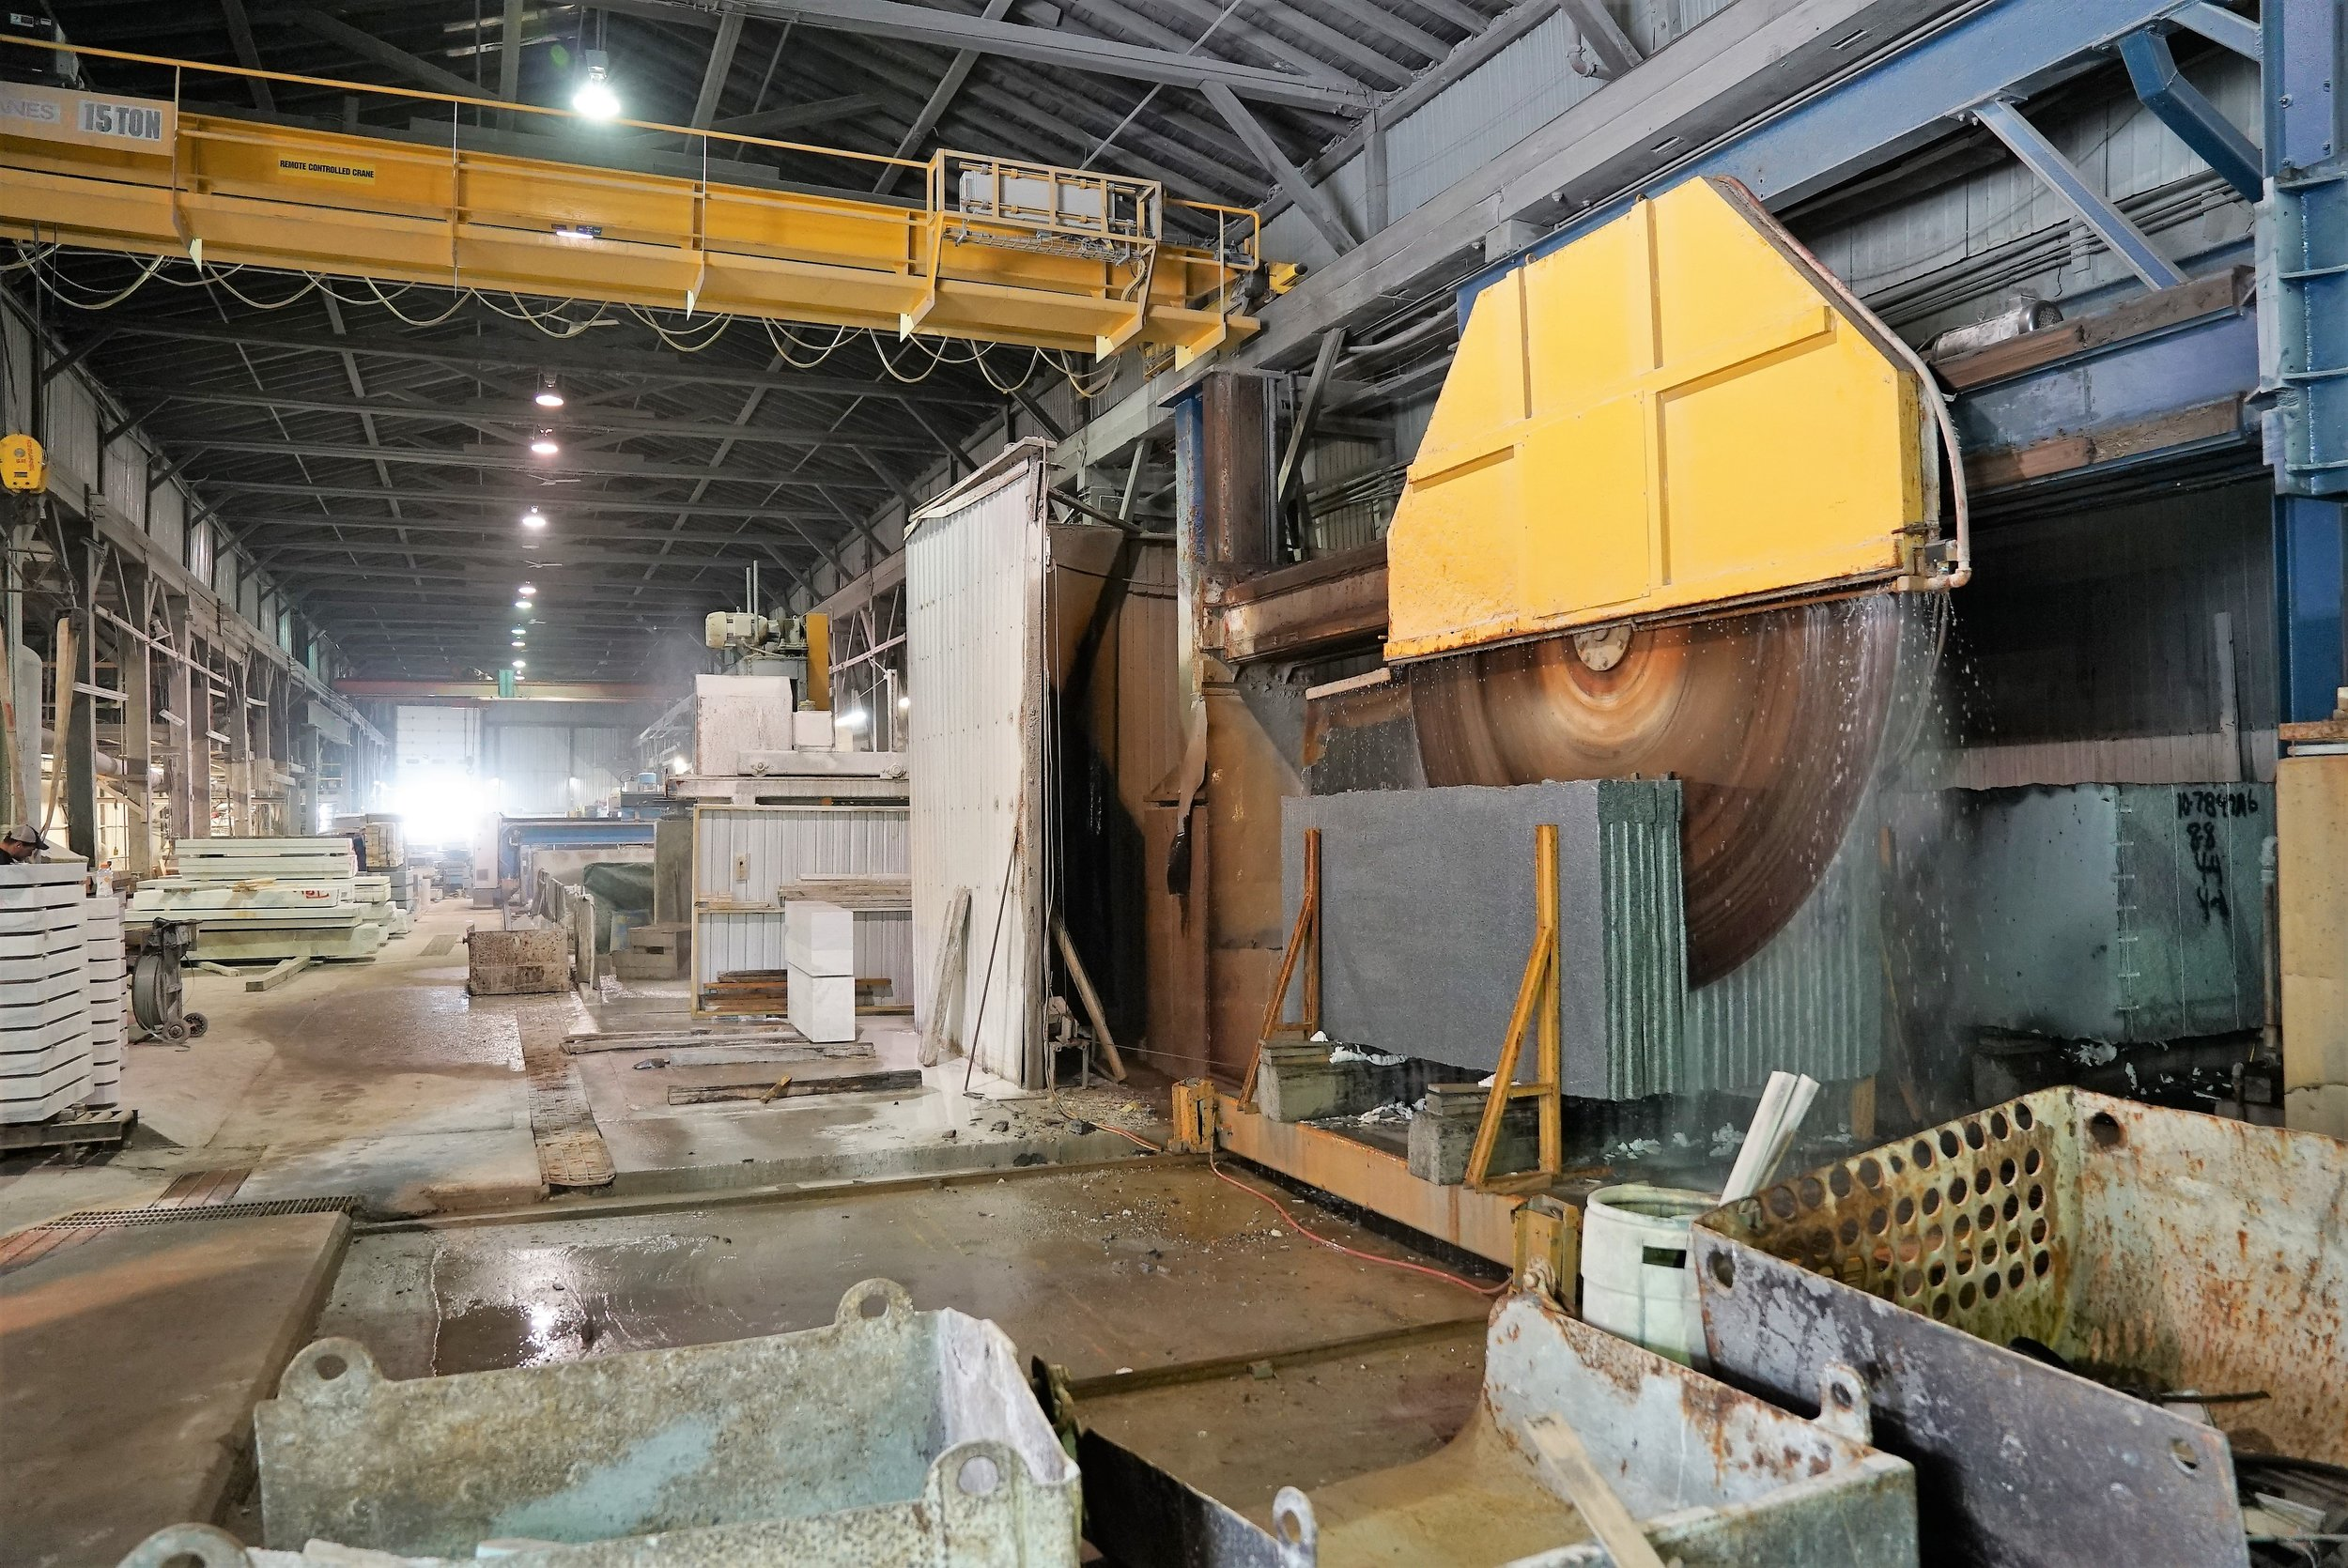 Giant saw cutting a block of granite into more manageable slabs.